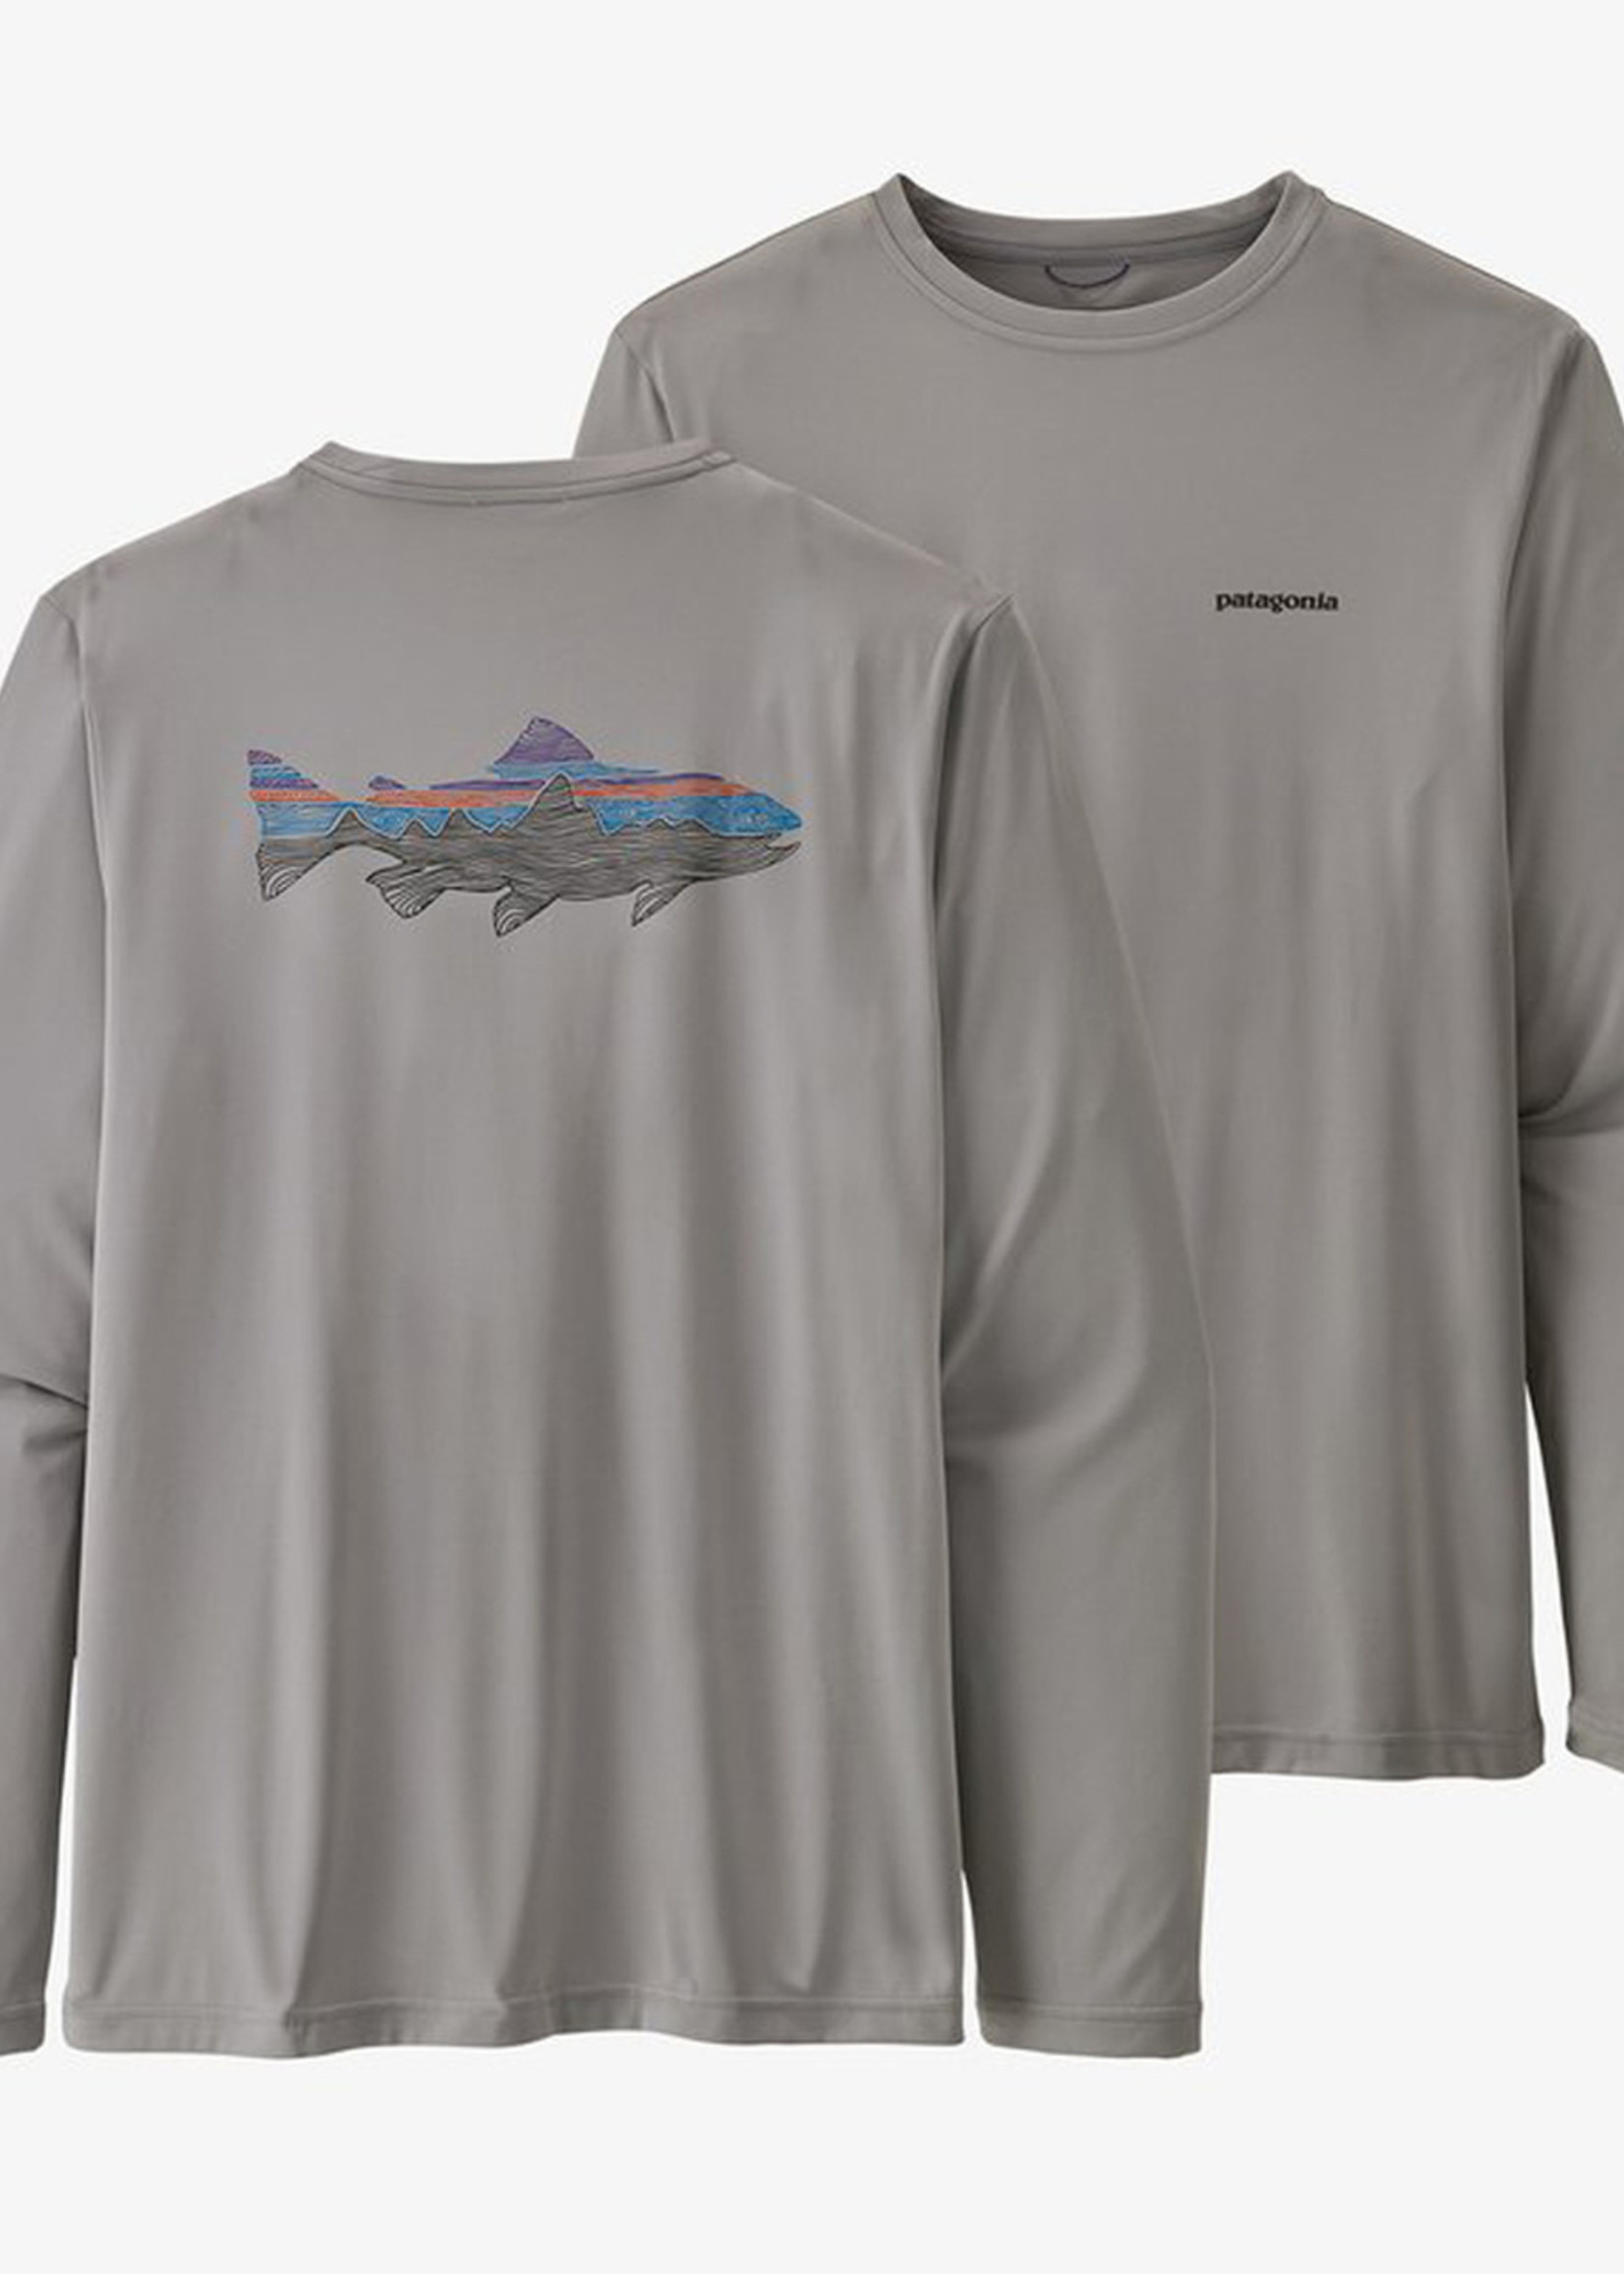 PATAGONIA M'S L/S CAP COOL DAILY FISH GRAPHIC SHIRT WOODGRAIN FITS ROY TROUT